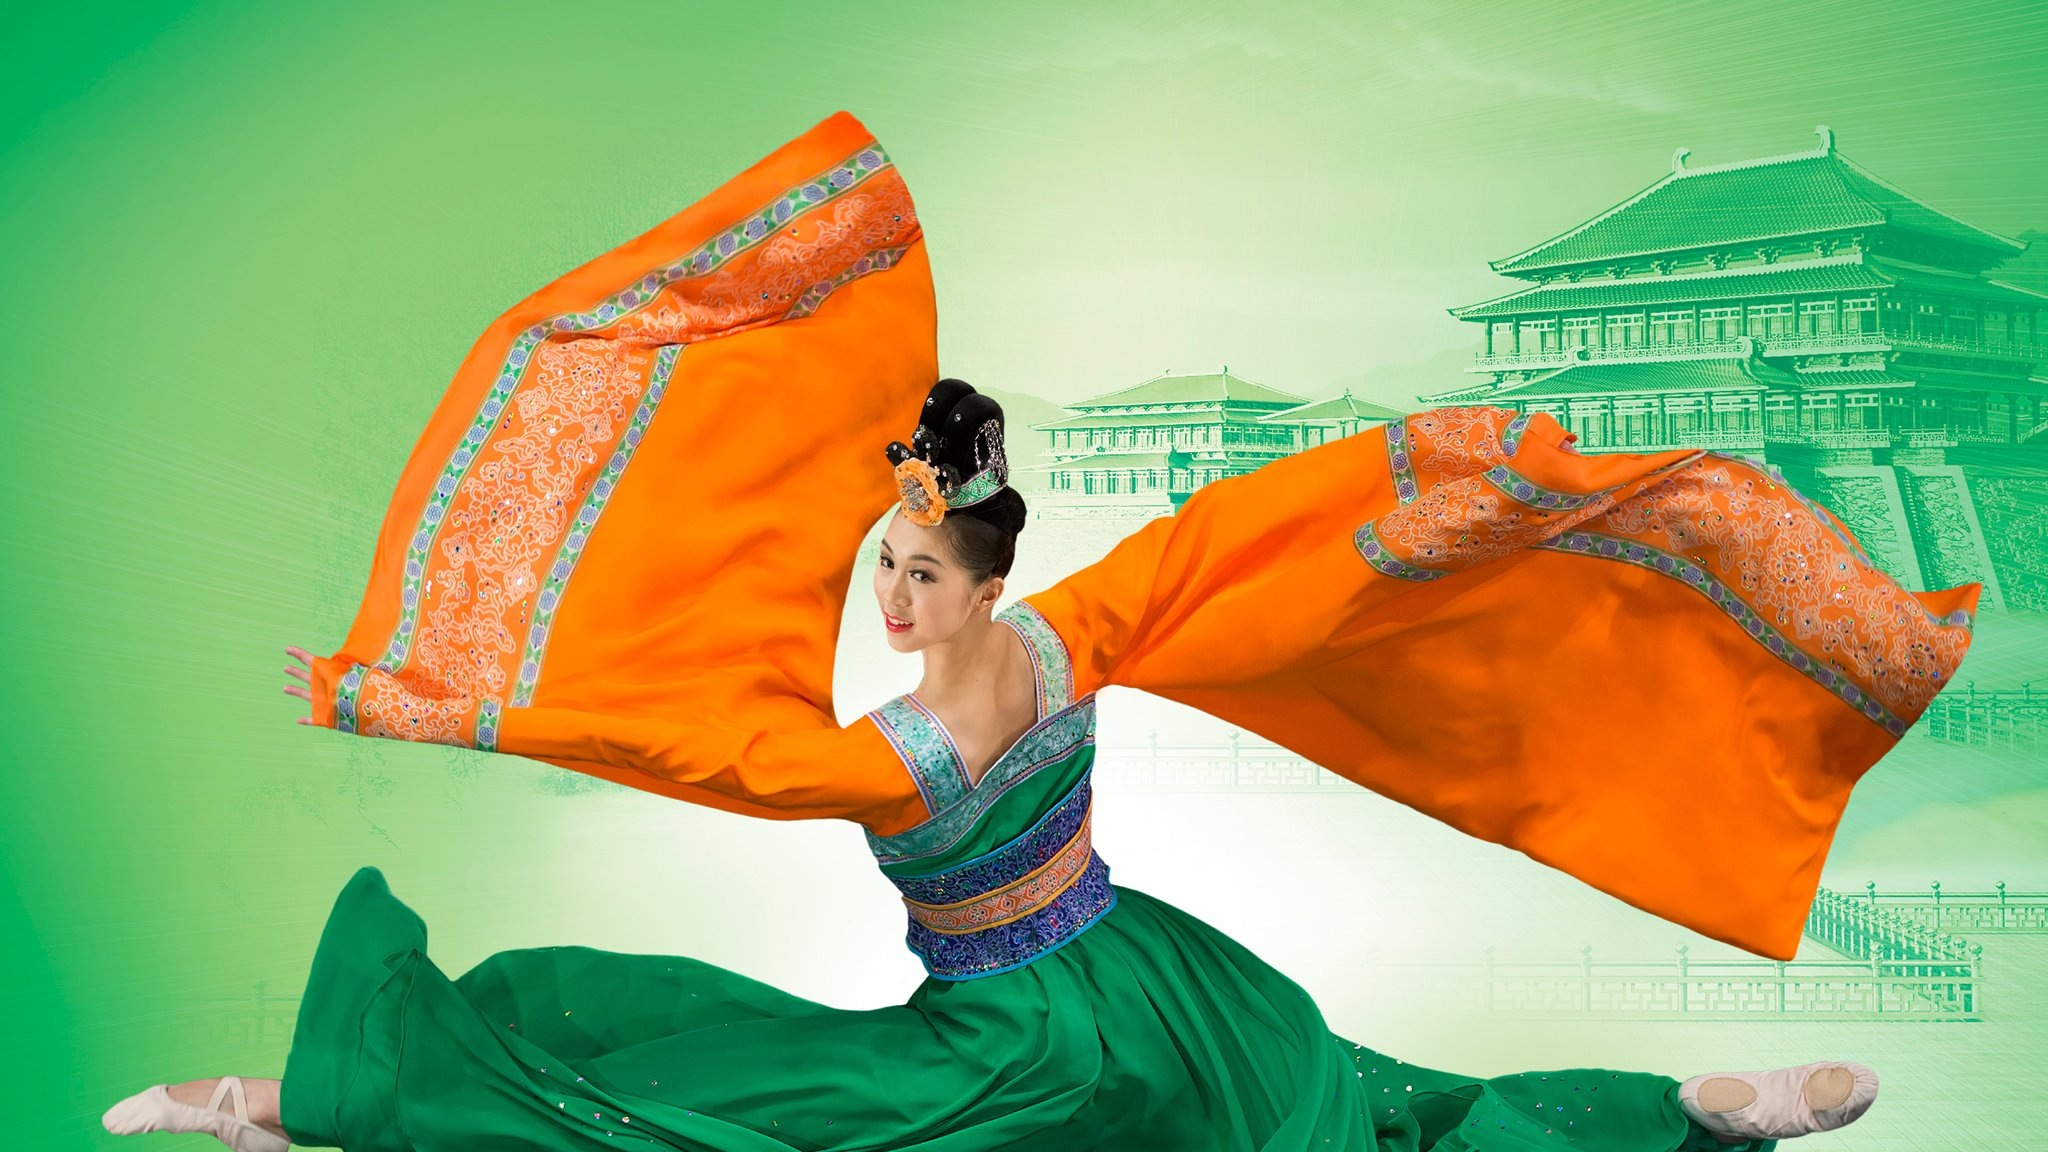 Shen Yun takes you on an unforgettable adventure of 5000 years of Ancient Chinese Culture